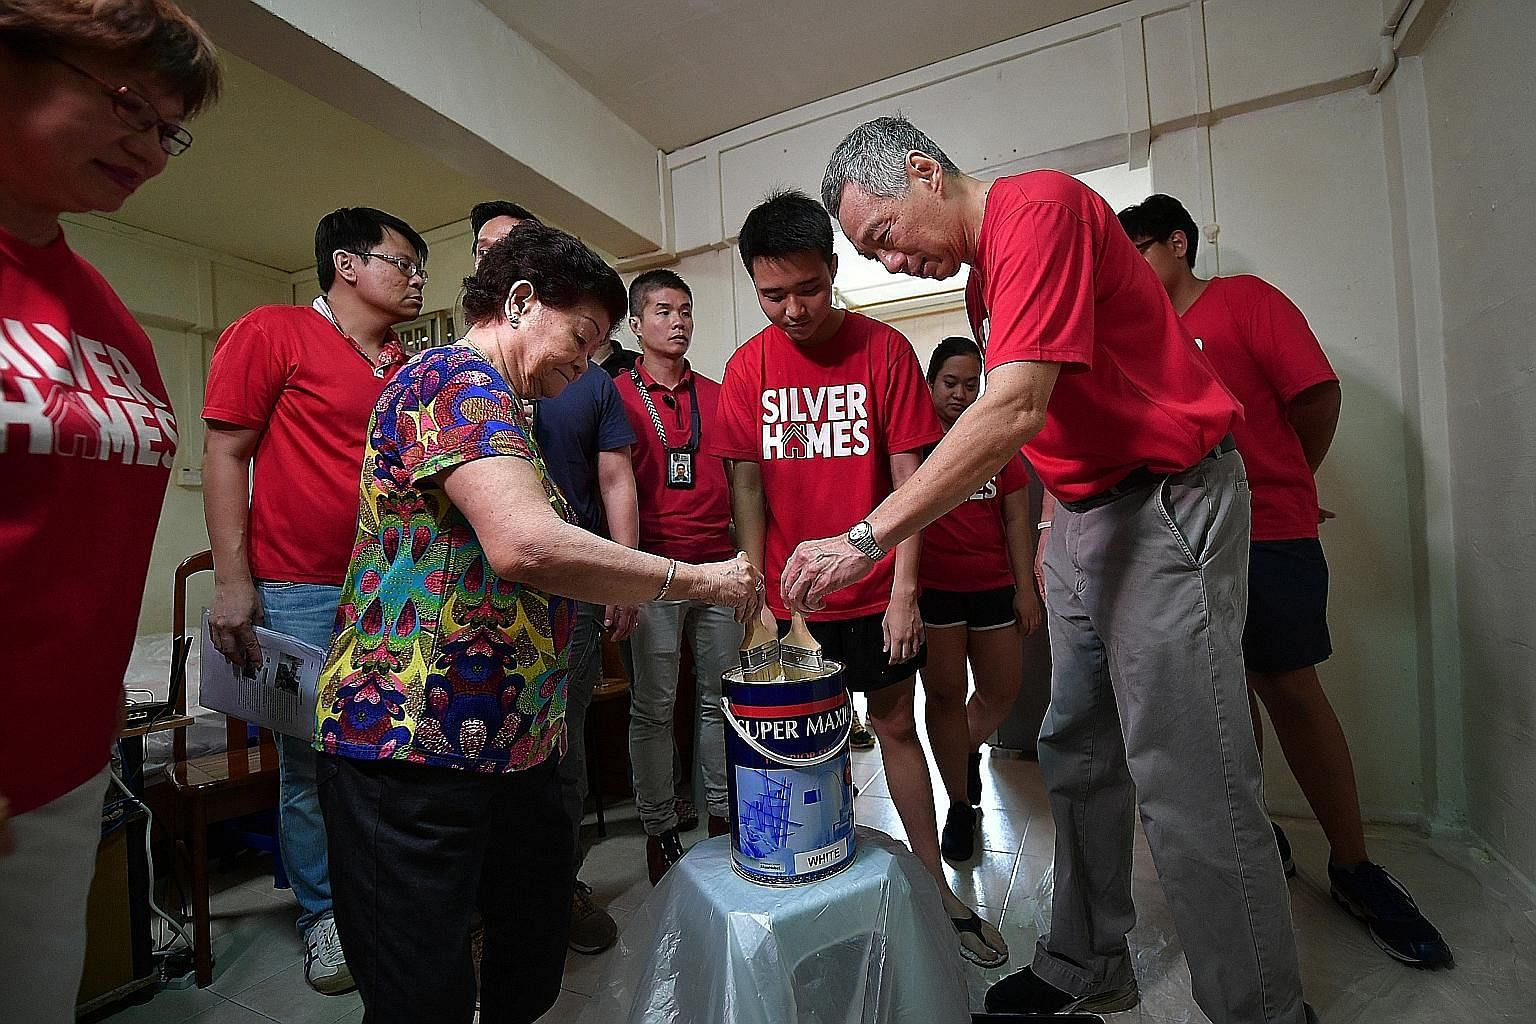 Prime Minister Lee Hsien Loong helping Madam Chen Yueh Lun paint her one-room rental flat together with student volunteers. With them is Central Singapore District Mayor Denise Phua (far left).